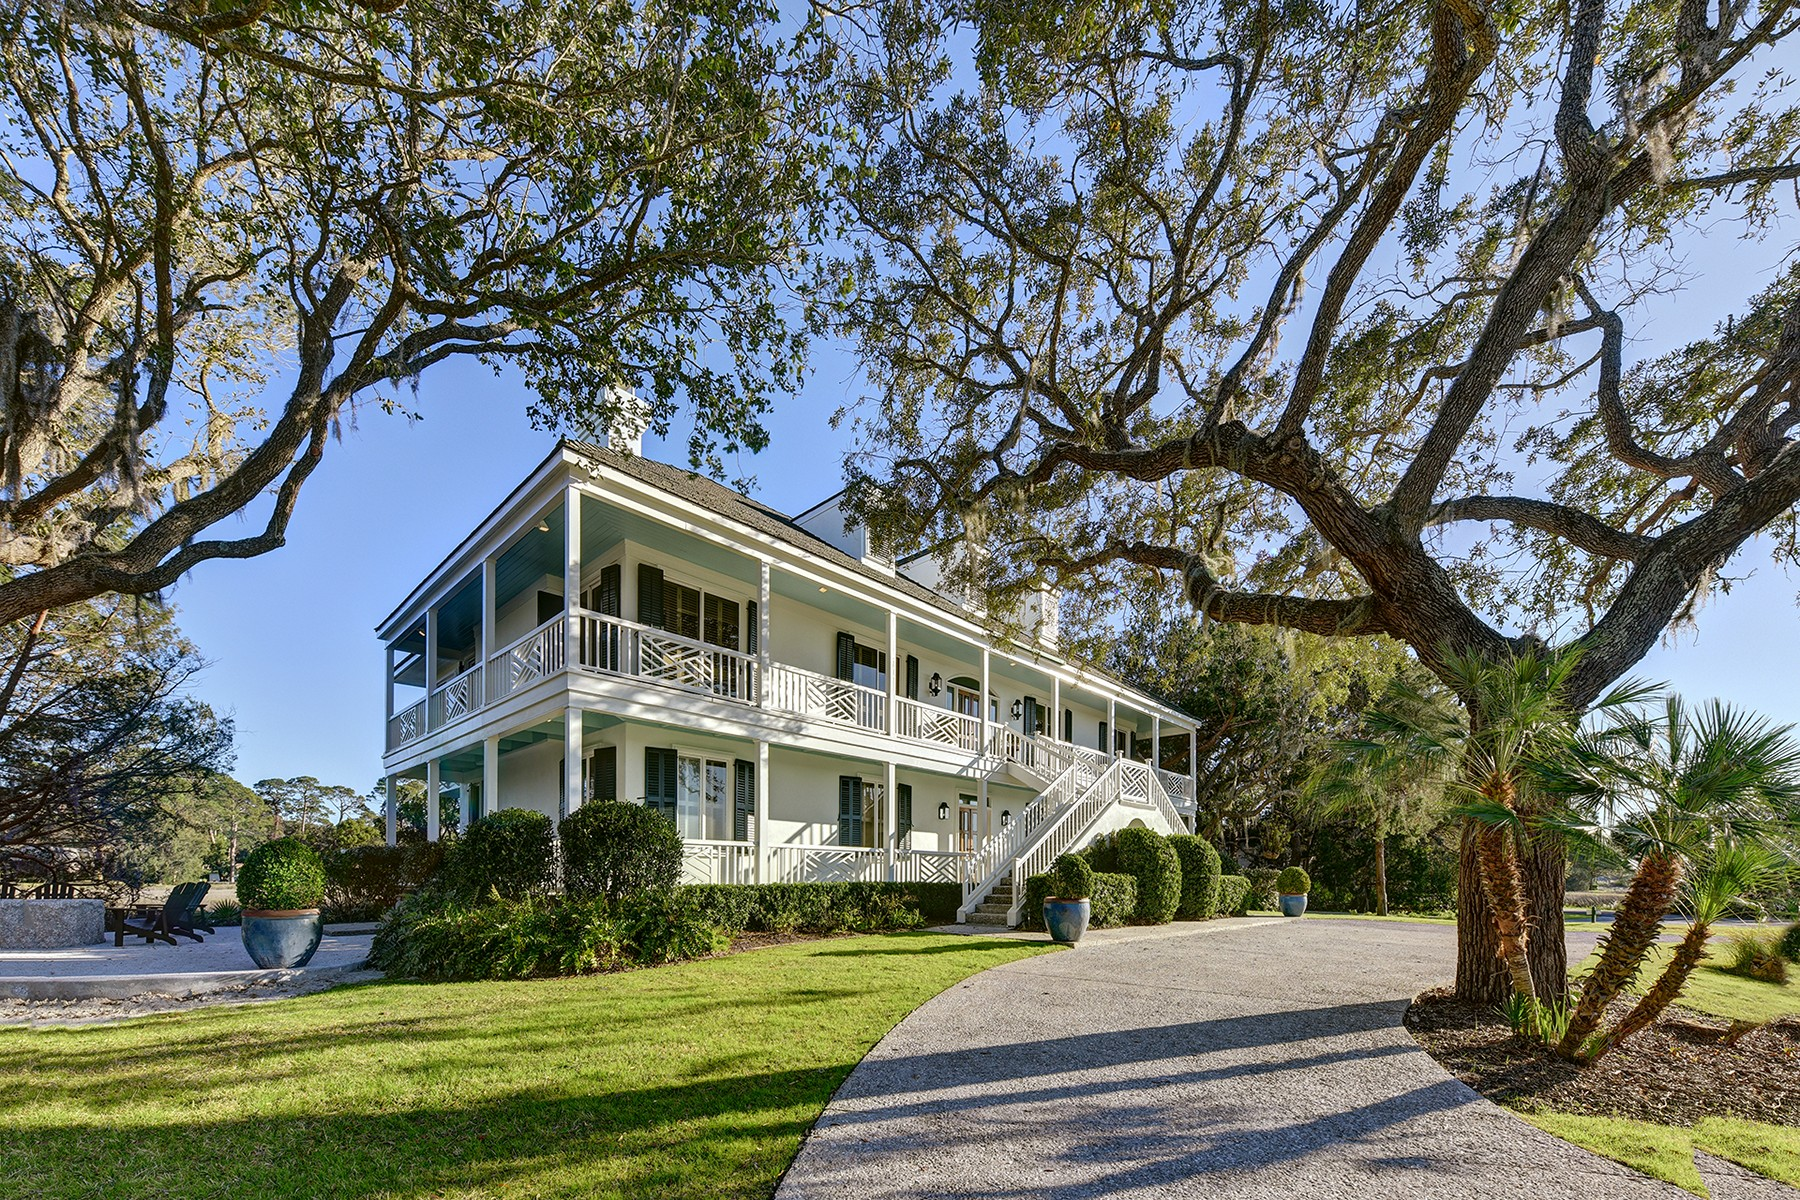 Single Family Home for Active at Cottage 382 382 West Thirteenth Street Cottage 395 Sea Island, Georgia 31522 United States